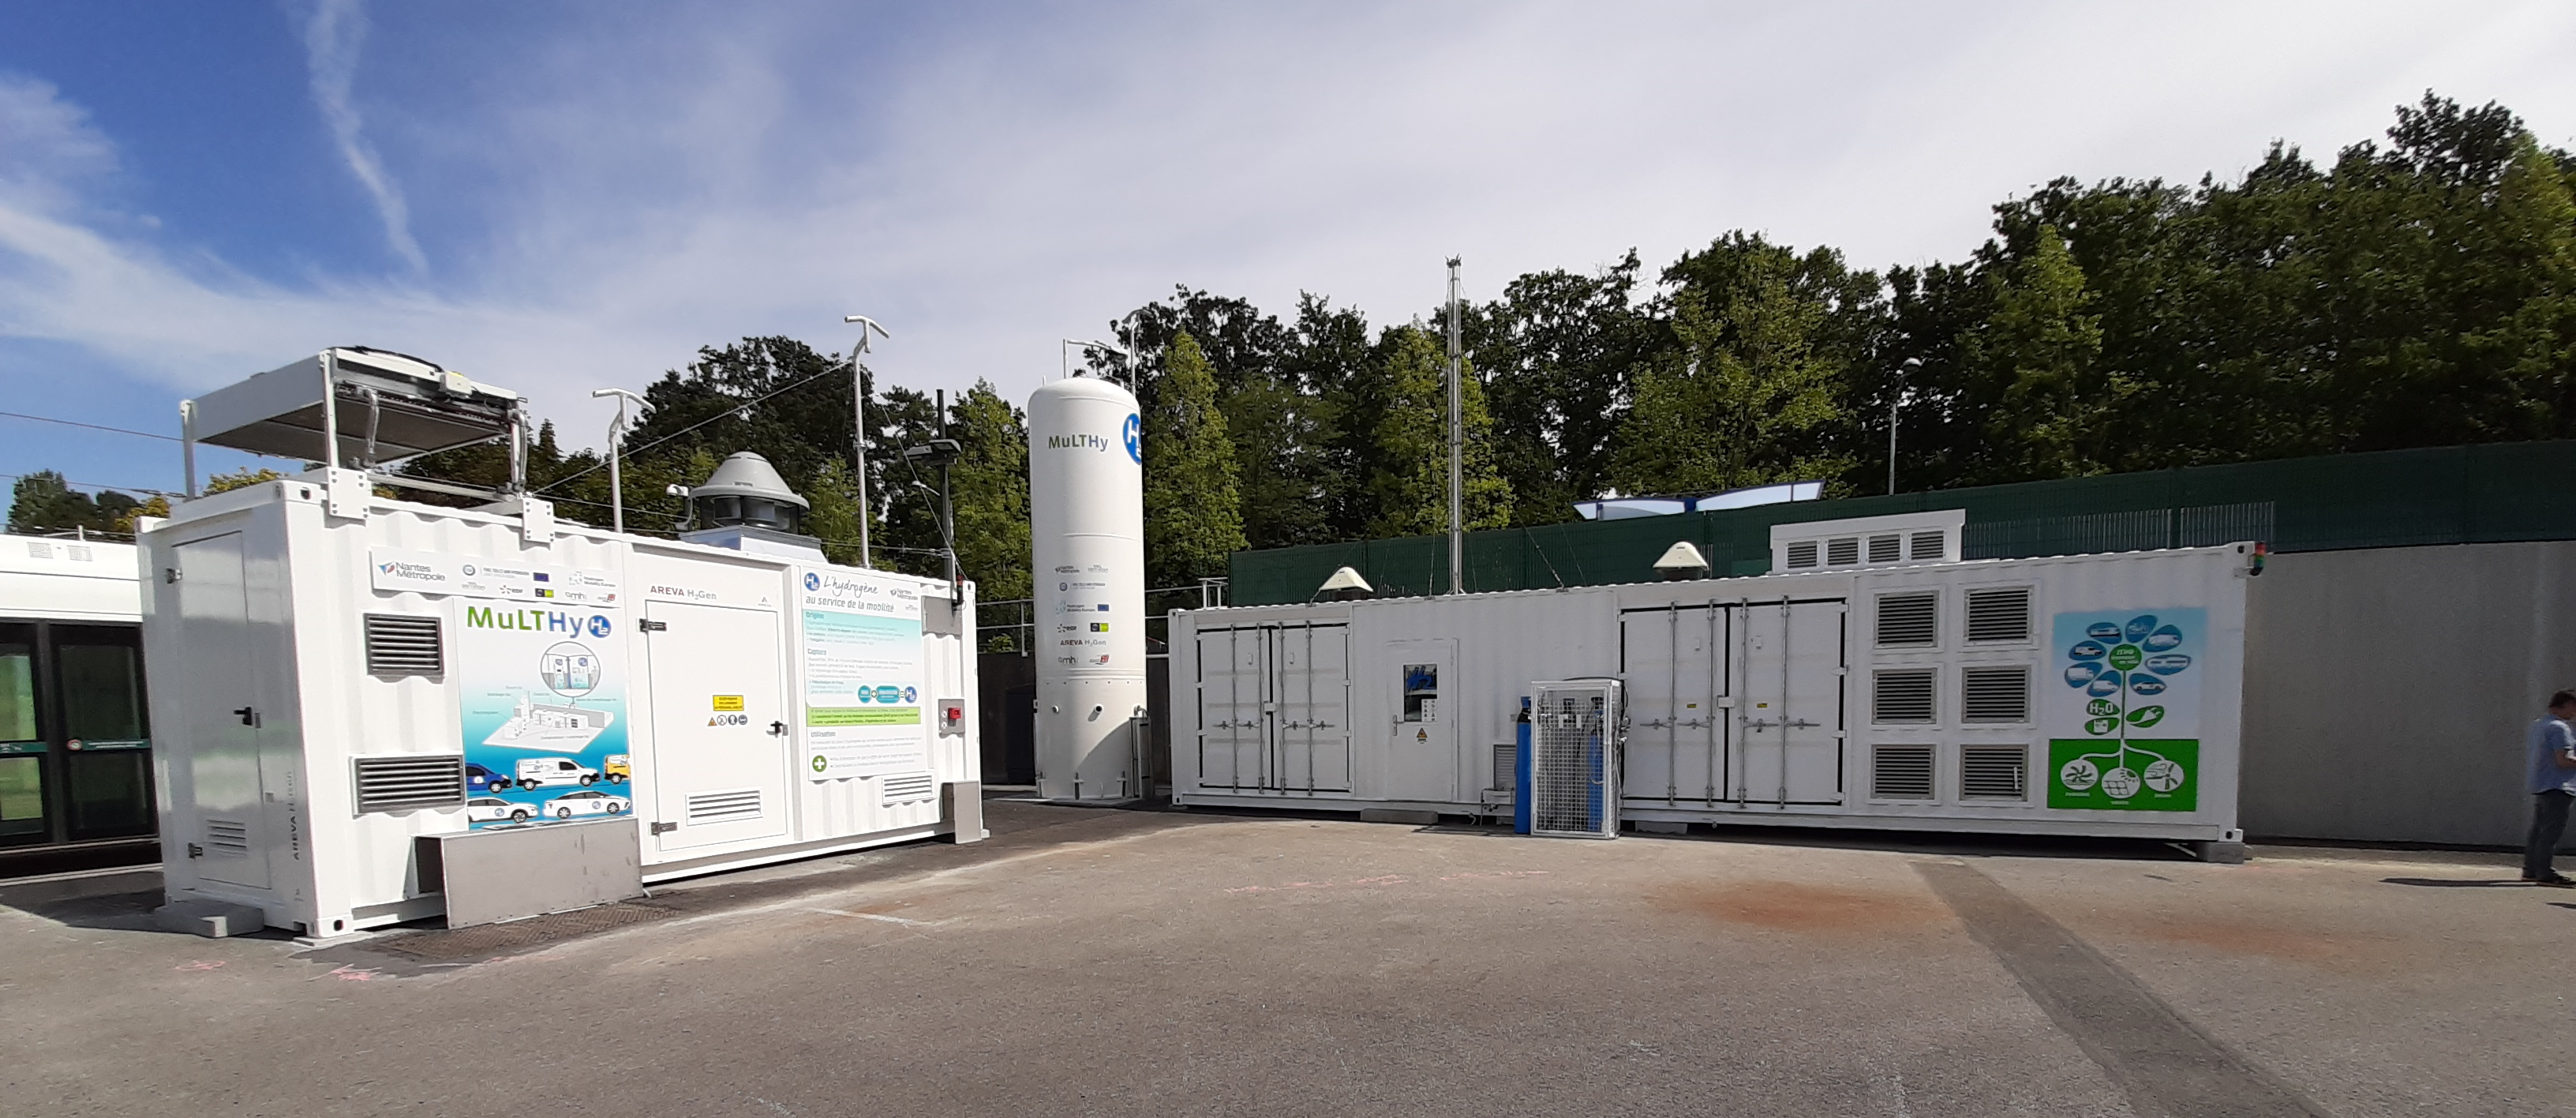 Haskel refueling station in Nantes France2